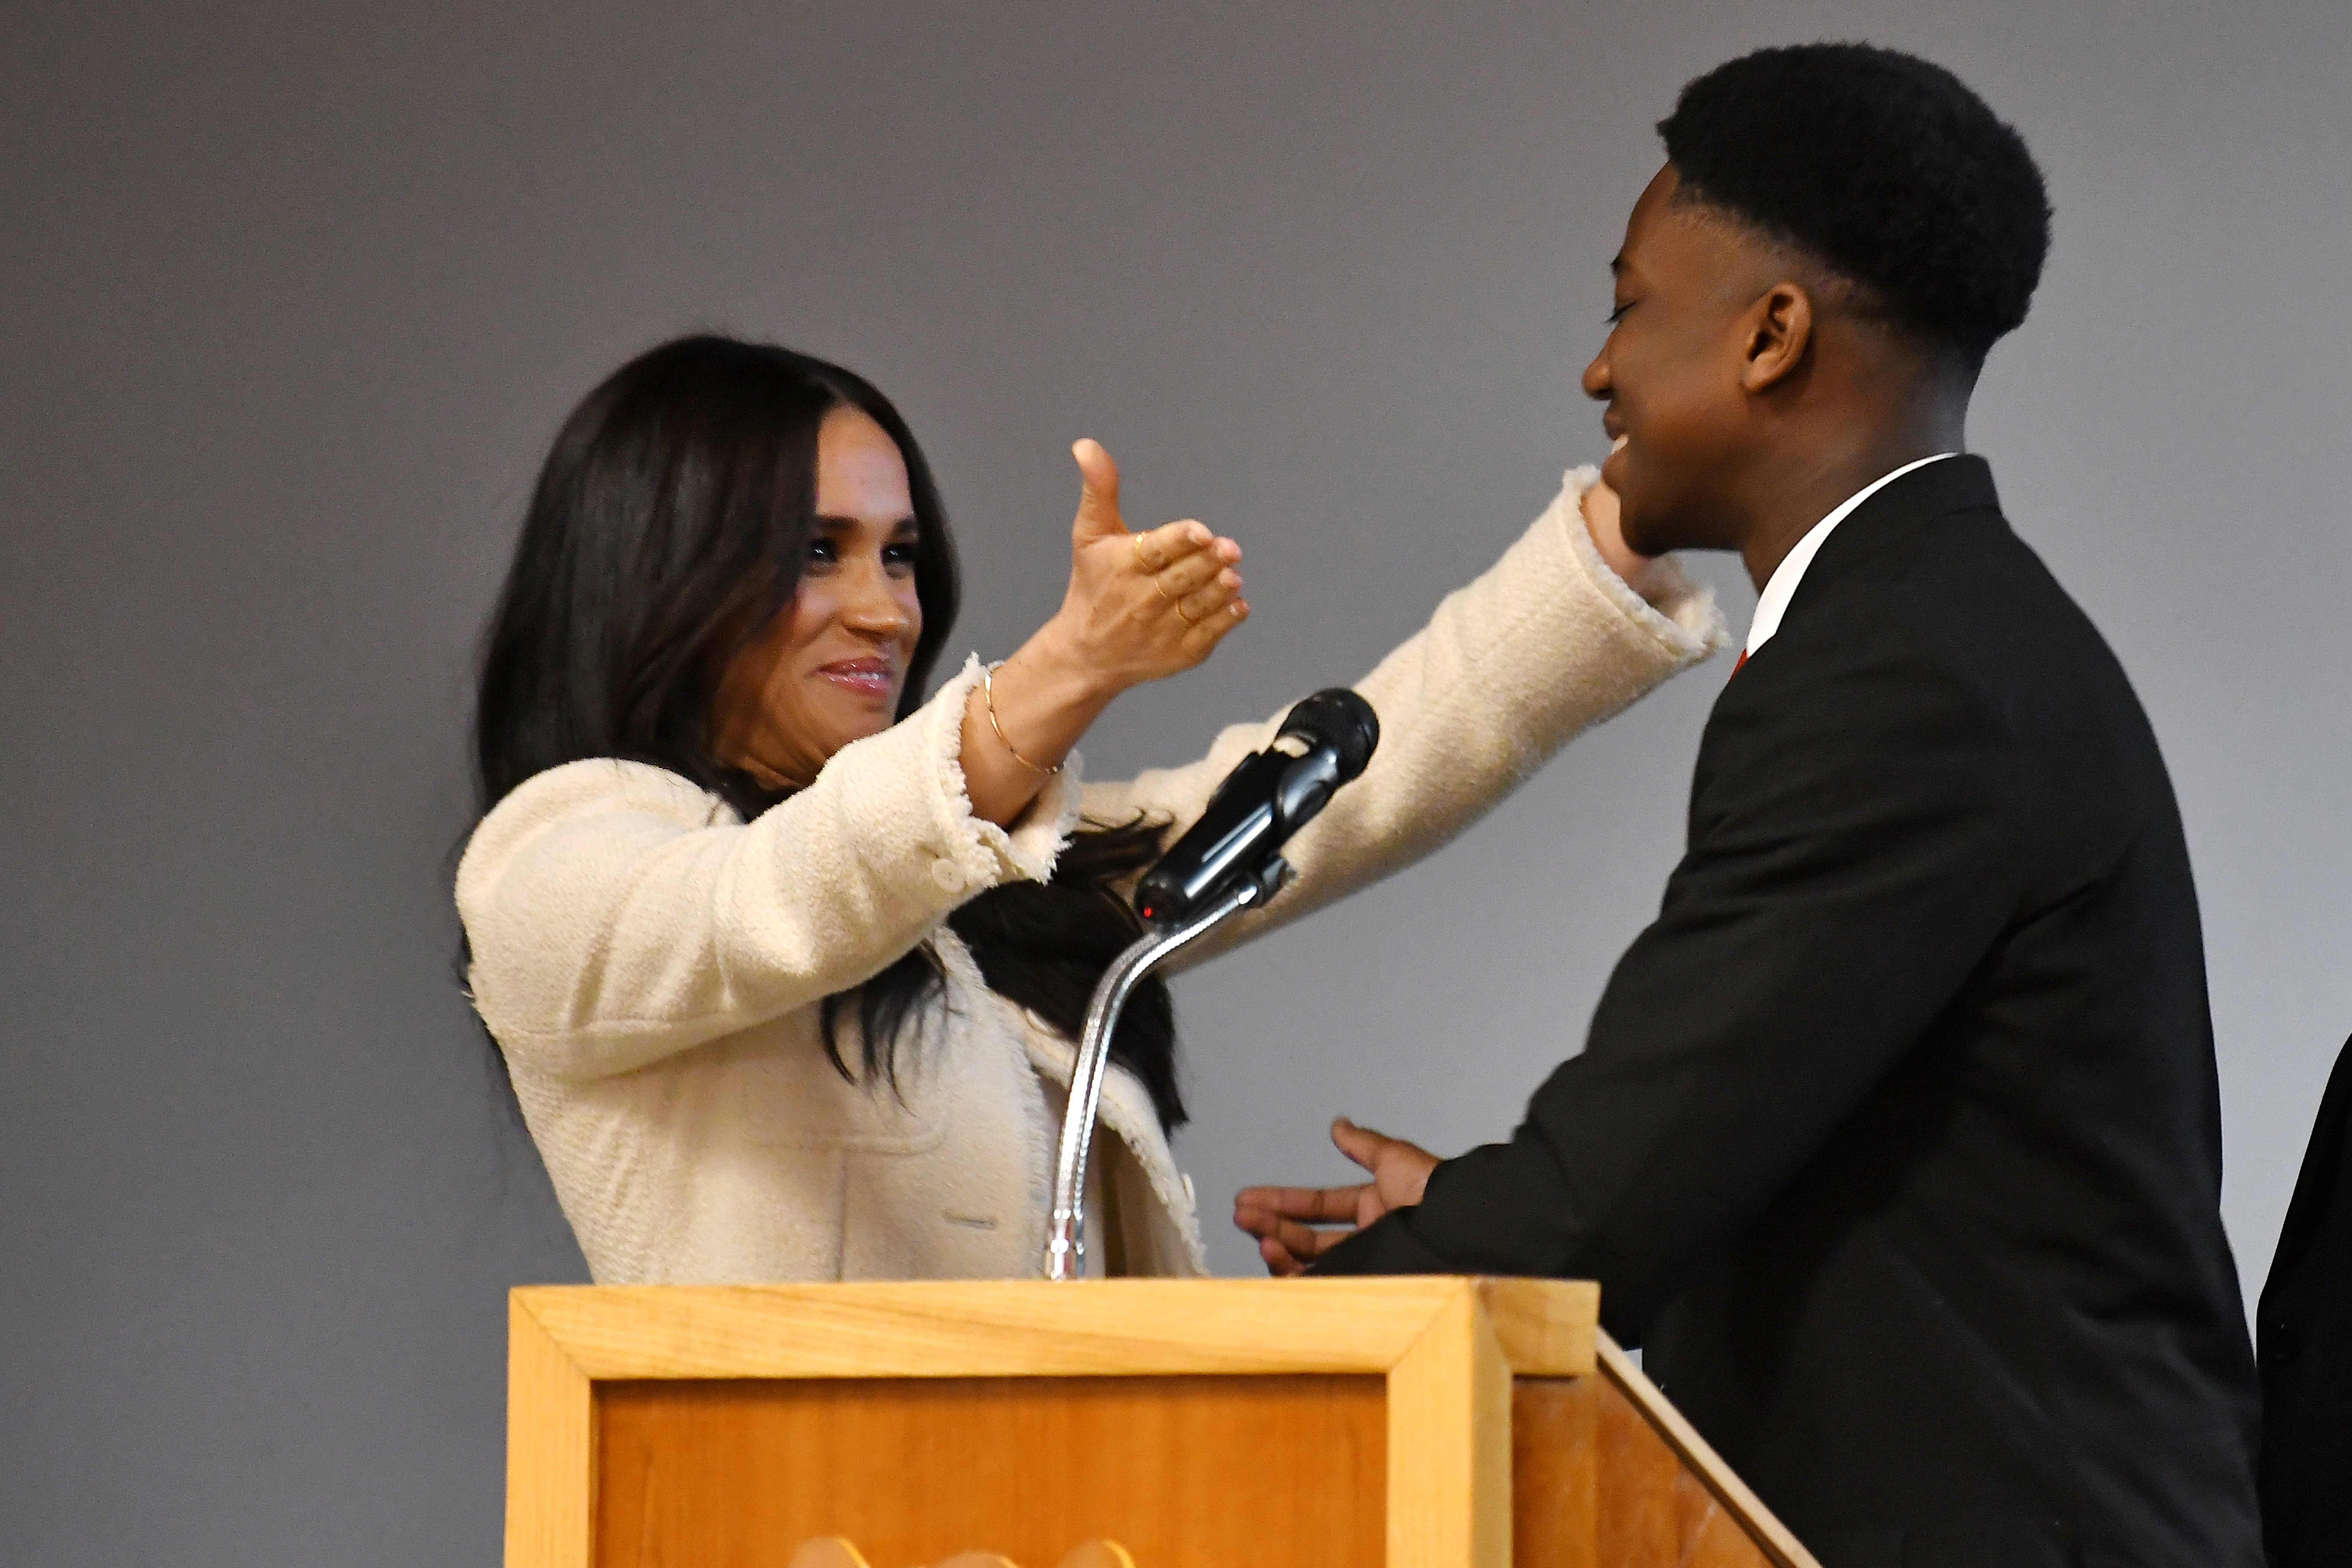 Meghan, Duchess of Sussex embraces student Aker Okoye during a special school assembly at the Robert Clack Upper School in Dagenham ahead of International Women's Day (IWD) held on Sunday 8th March, on March 6, 2020 in London, England. | Source: Getty Images